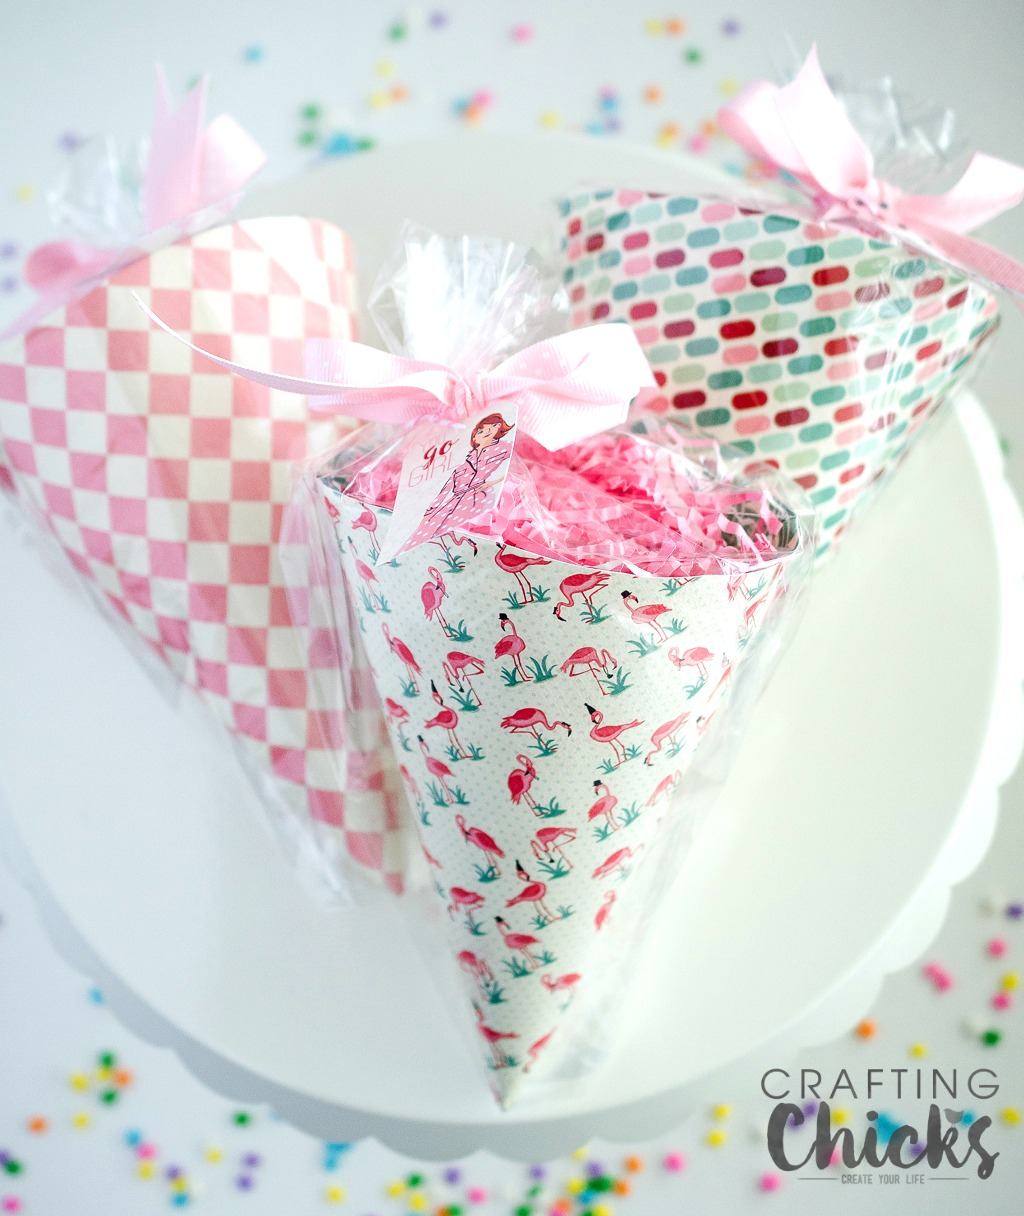 Galentine's Day Gifts are a fun way to celebrate your best gal pals. These adorable cones are sure to put a smile on the faces of all your friends.